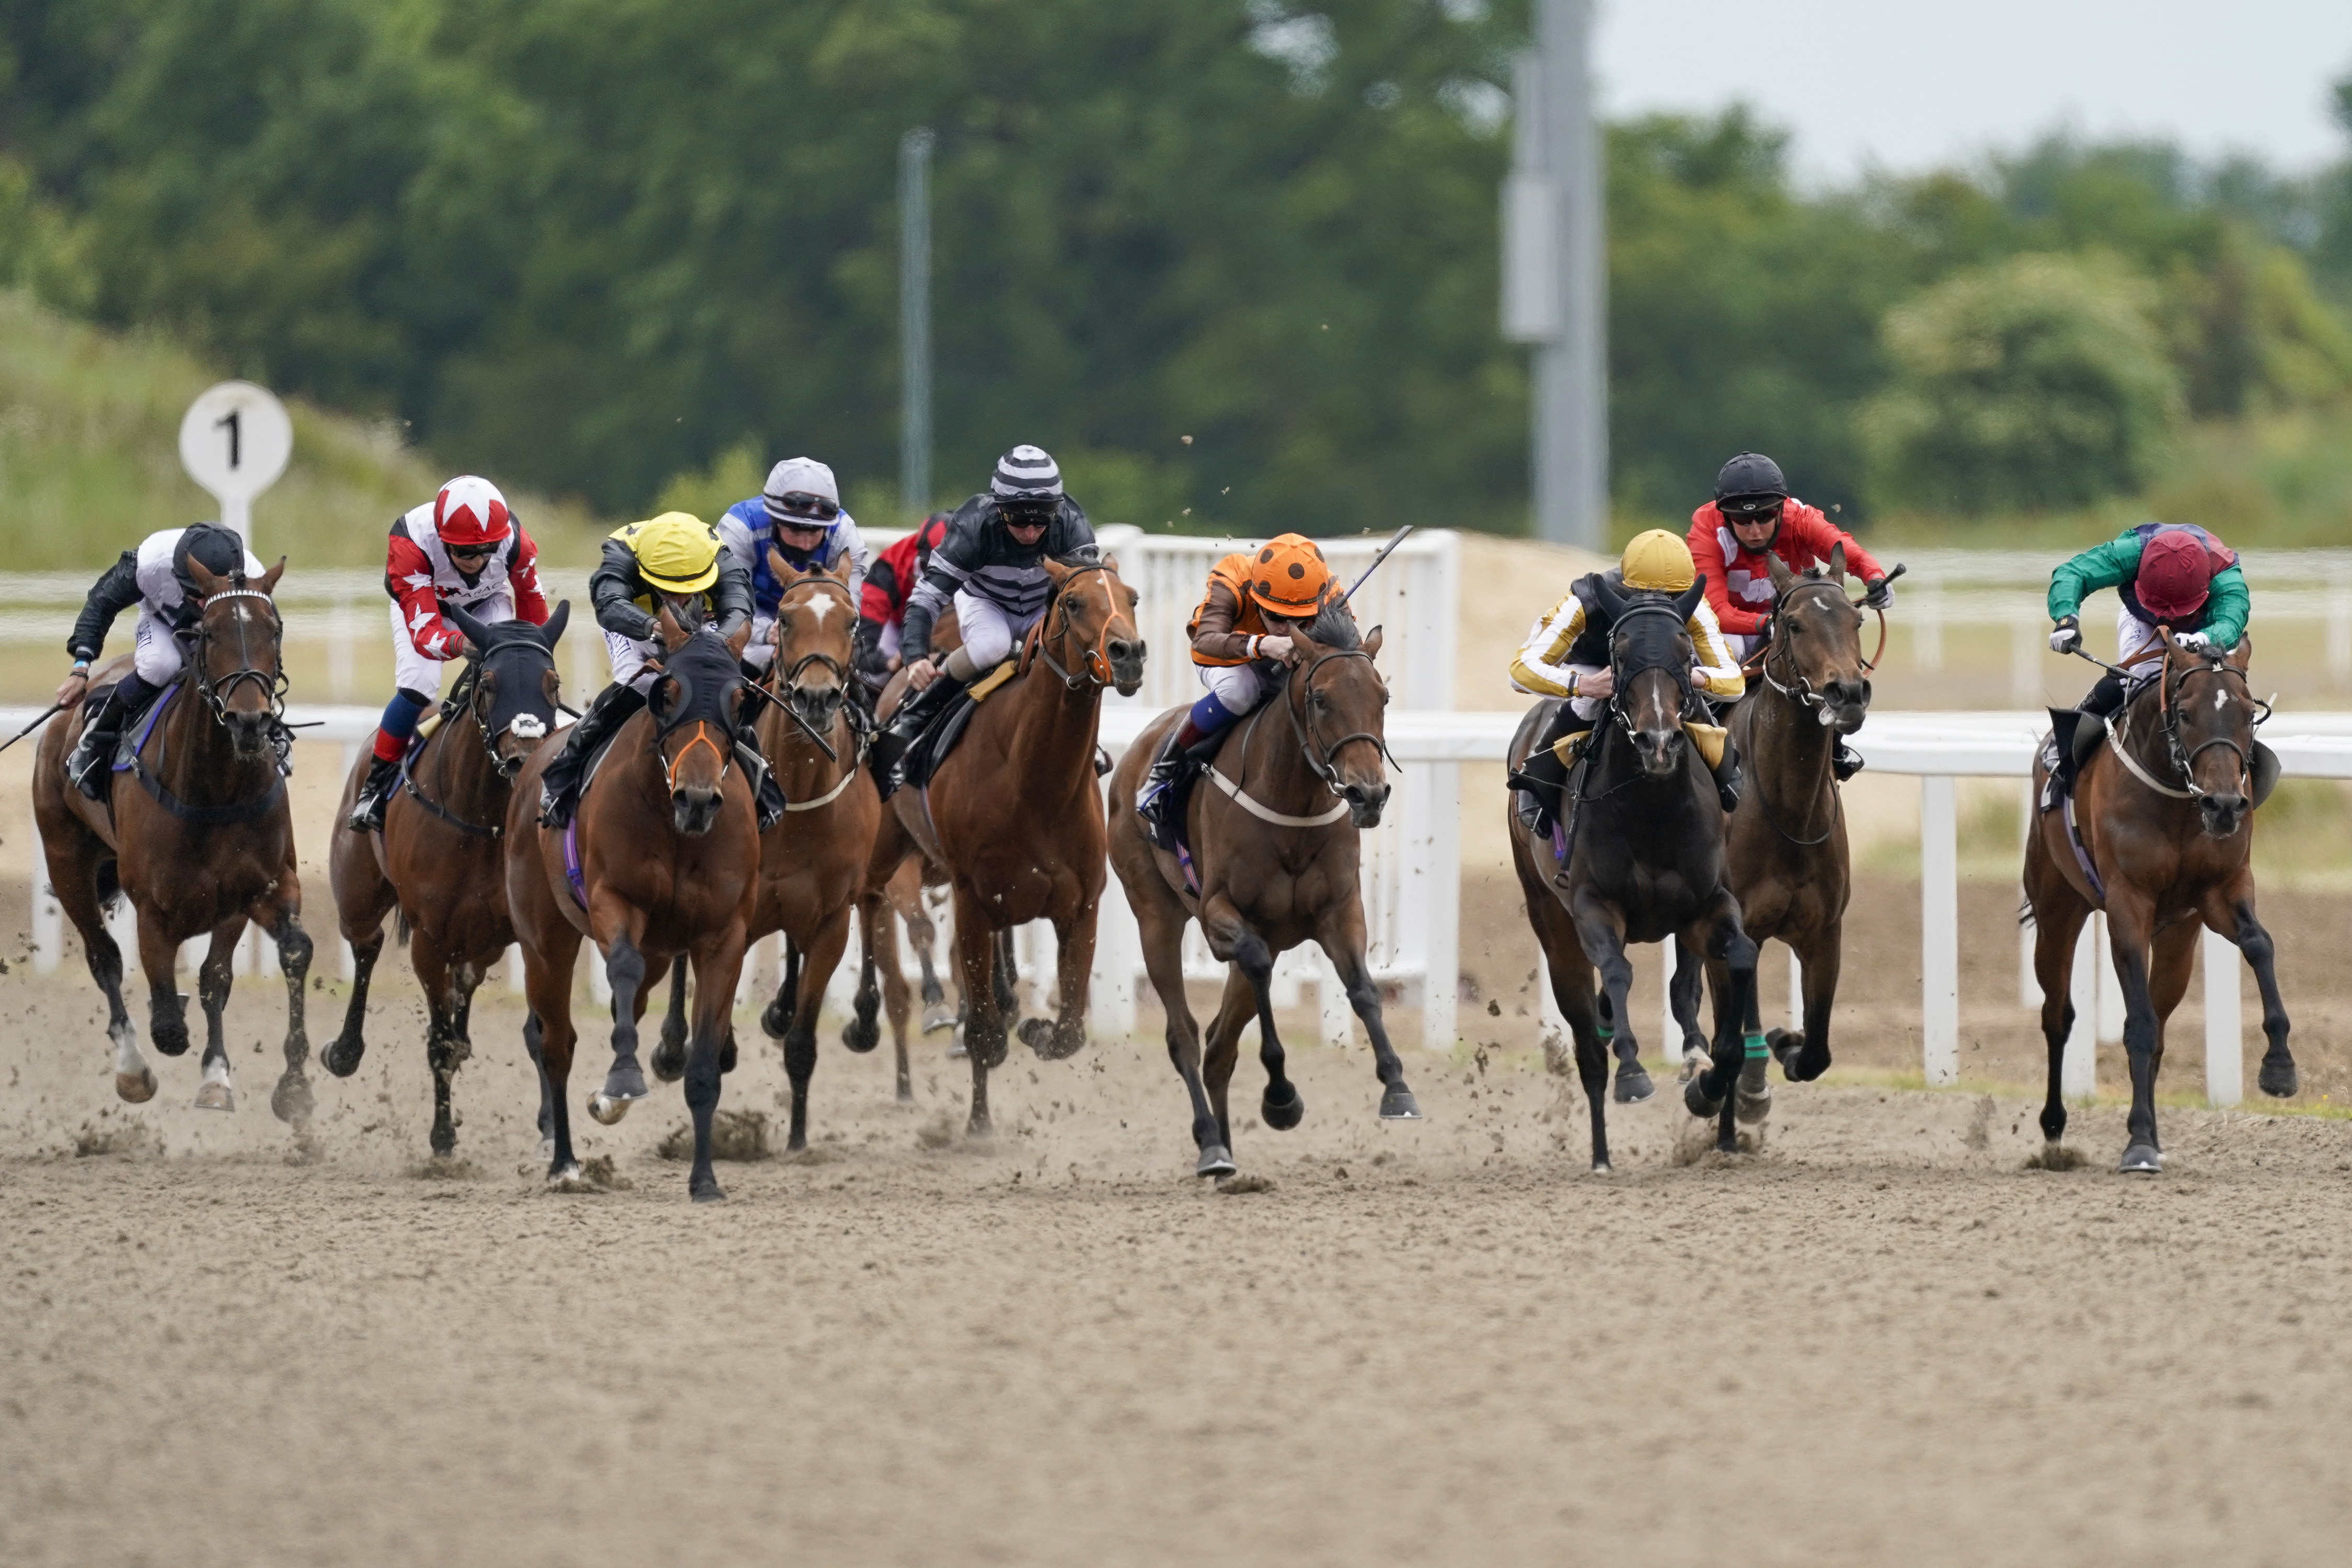 CHELMSFORD, ENGLAND - JUNE 08: David Egan riding Queen of Silca (orange) win The Chelmsford Handicap at Chelmsford City Racecourse on June 08, 2020 in Chelmsford, England. (Photo by Alan Crowhurst/Getty Images)